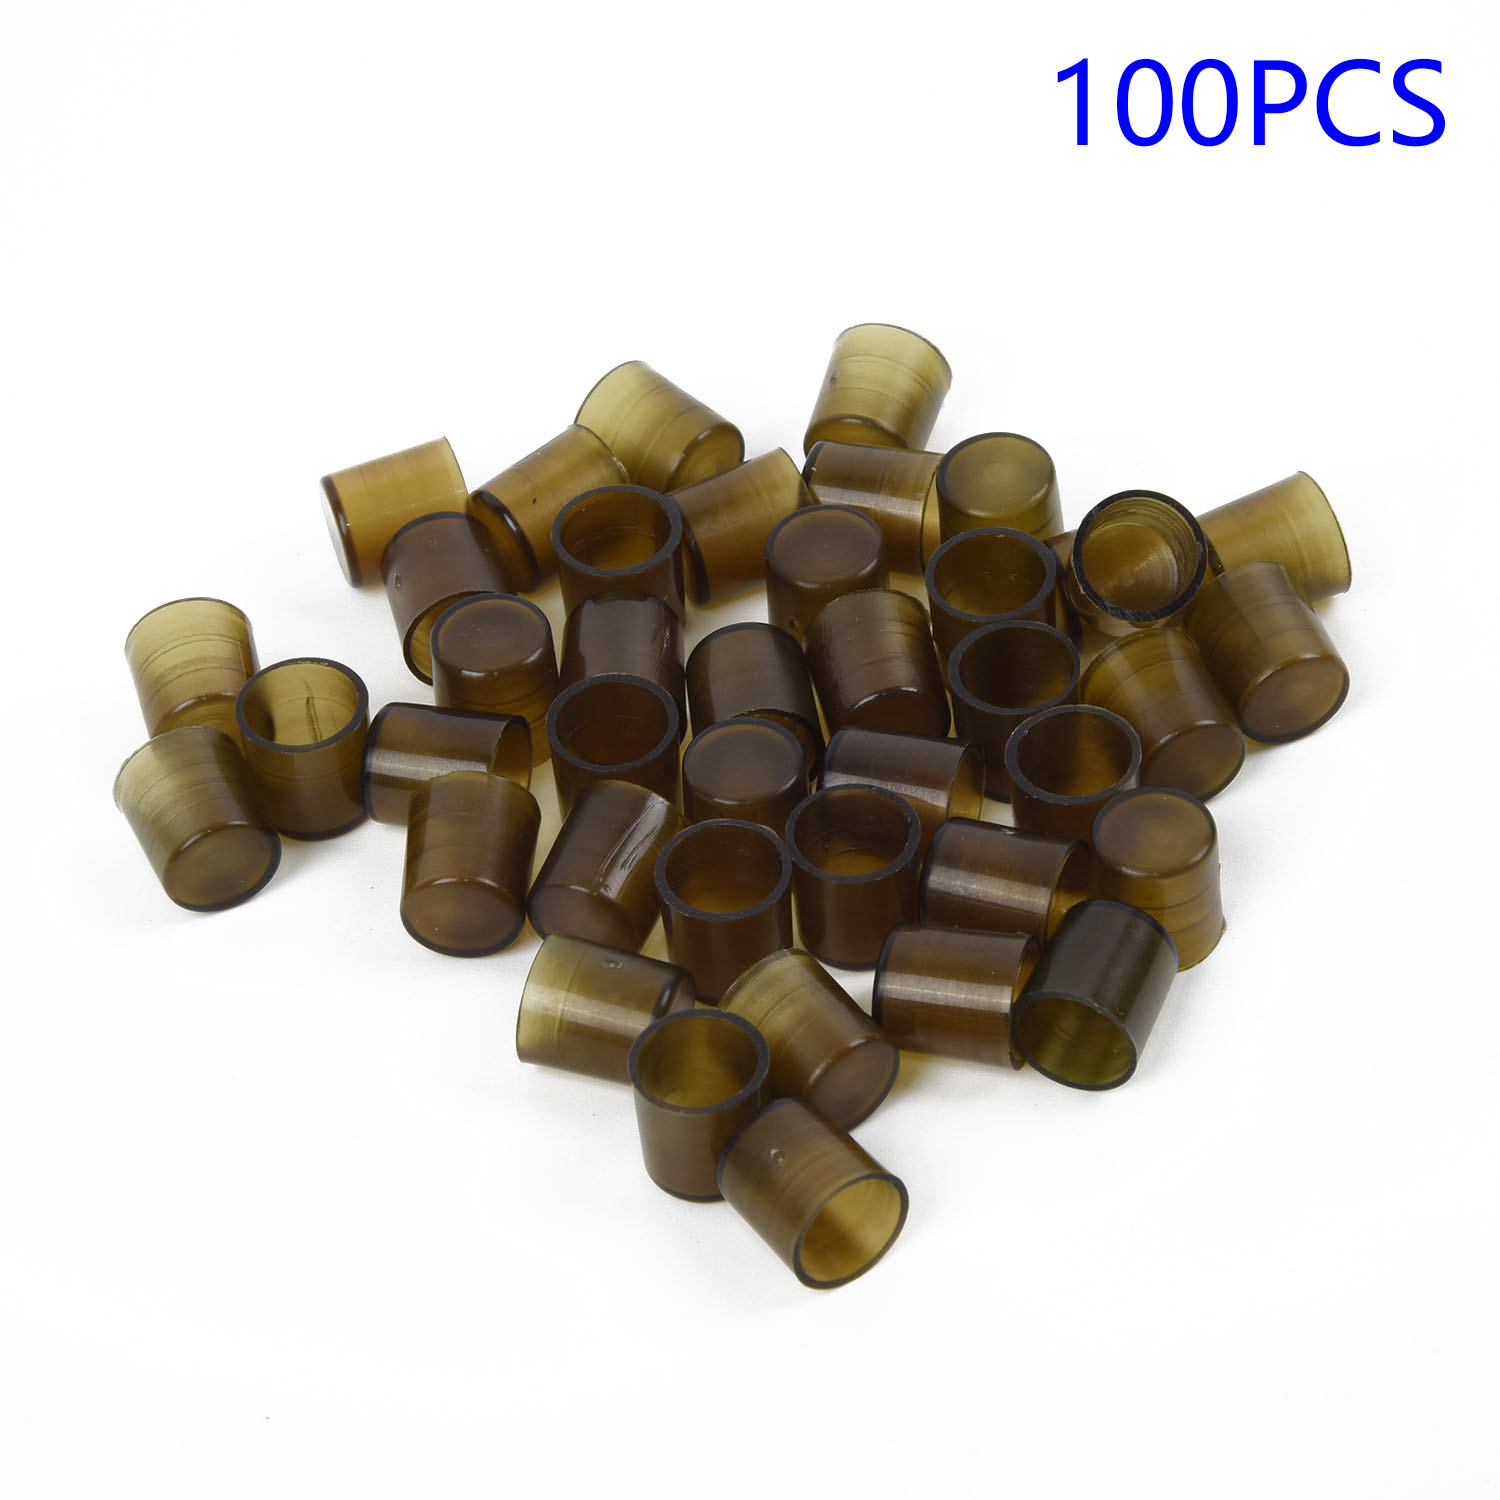 100pcs Plastic Brown Cell Cups Queen Raise Rearing Honey Bee Beekeeping w//Holder